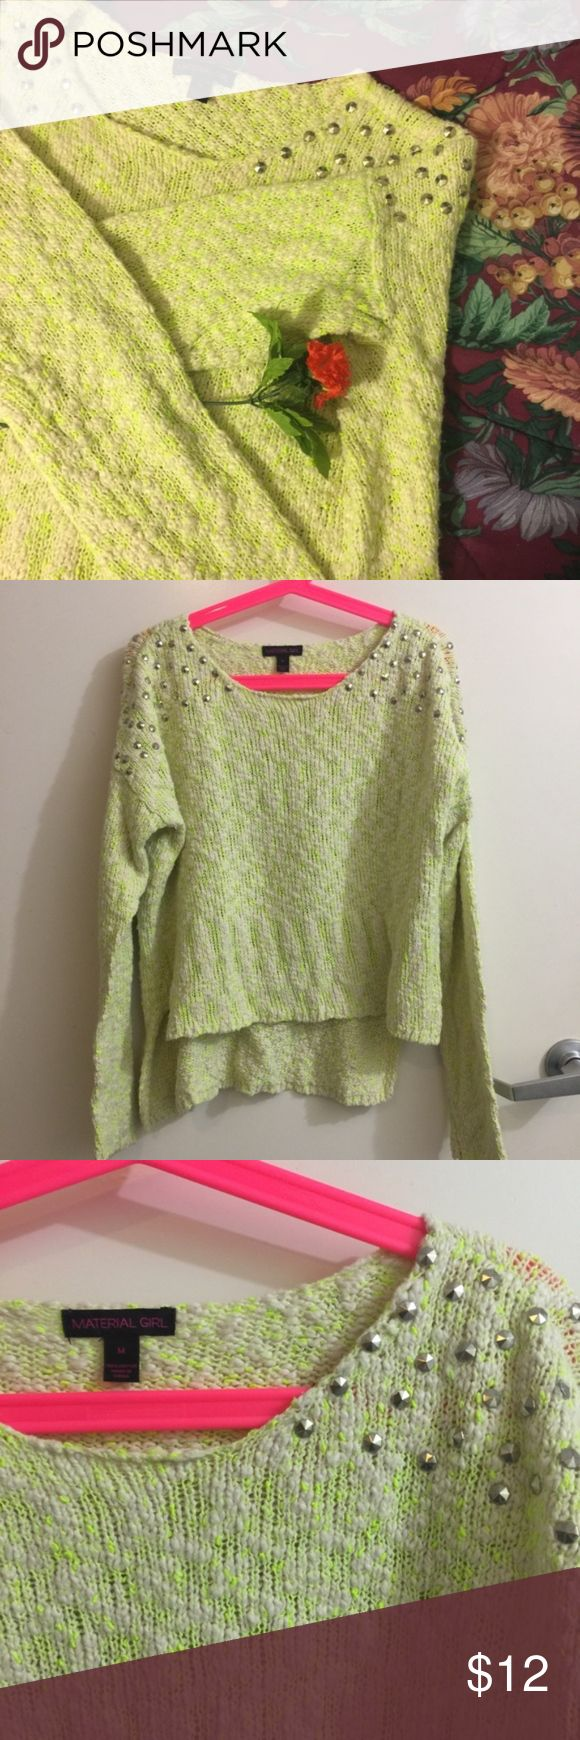 Material Girl Neon High Low Studded Sweater Size medium Material Girl from Macy's scoop neck sweater.  Features high low hi lo design. White with neon green threads, and studding studs spikes detailing on shoulders. The perfect dressy casual sweater, and very unique. No flaws. Material Girl Sweaters Crew & Scoop Necks